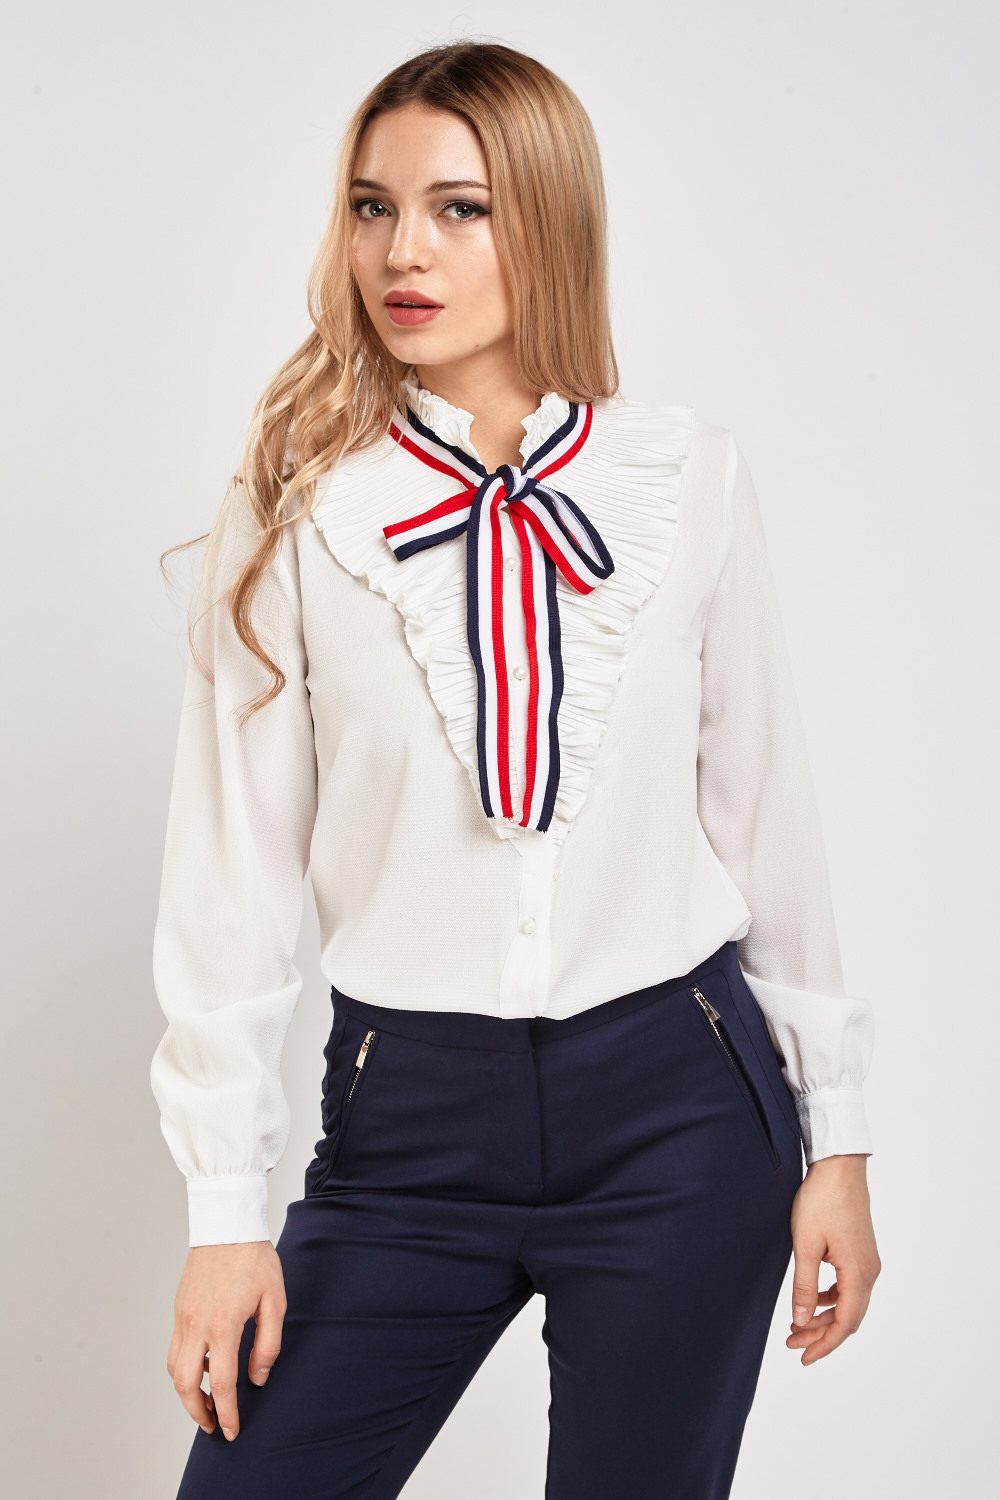 58ecebb11a8 Pleated Ribbon Tie Up Blouse - Just £5